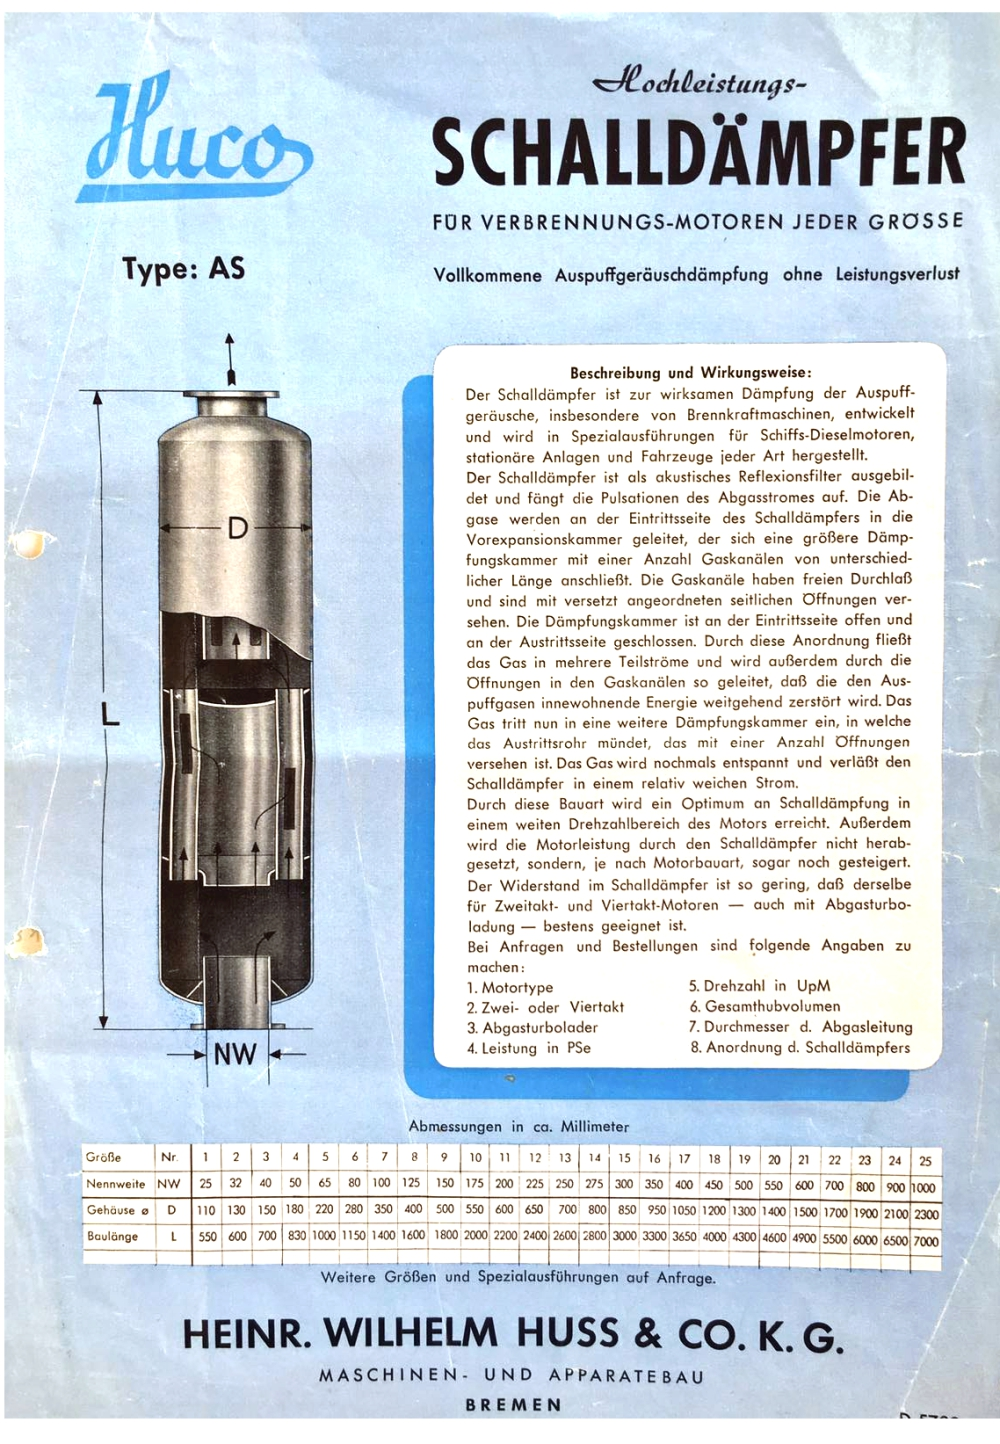 HUSS silencer brochure from the 1930s